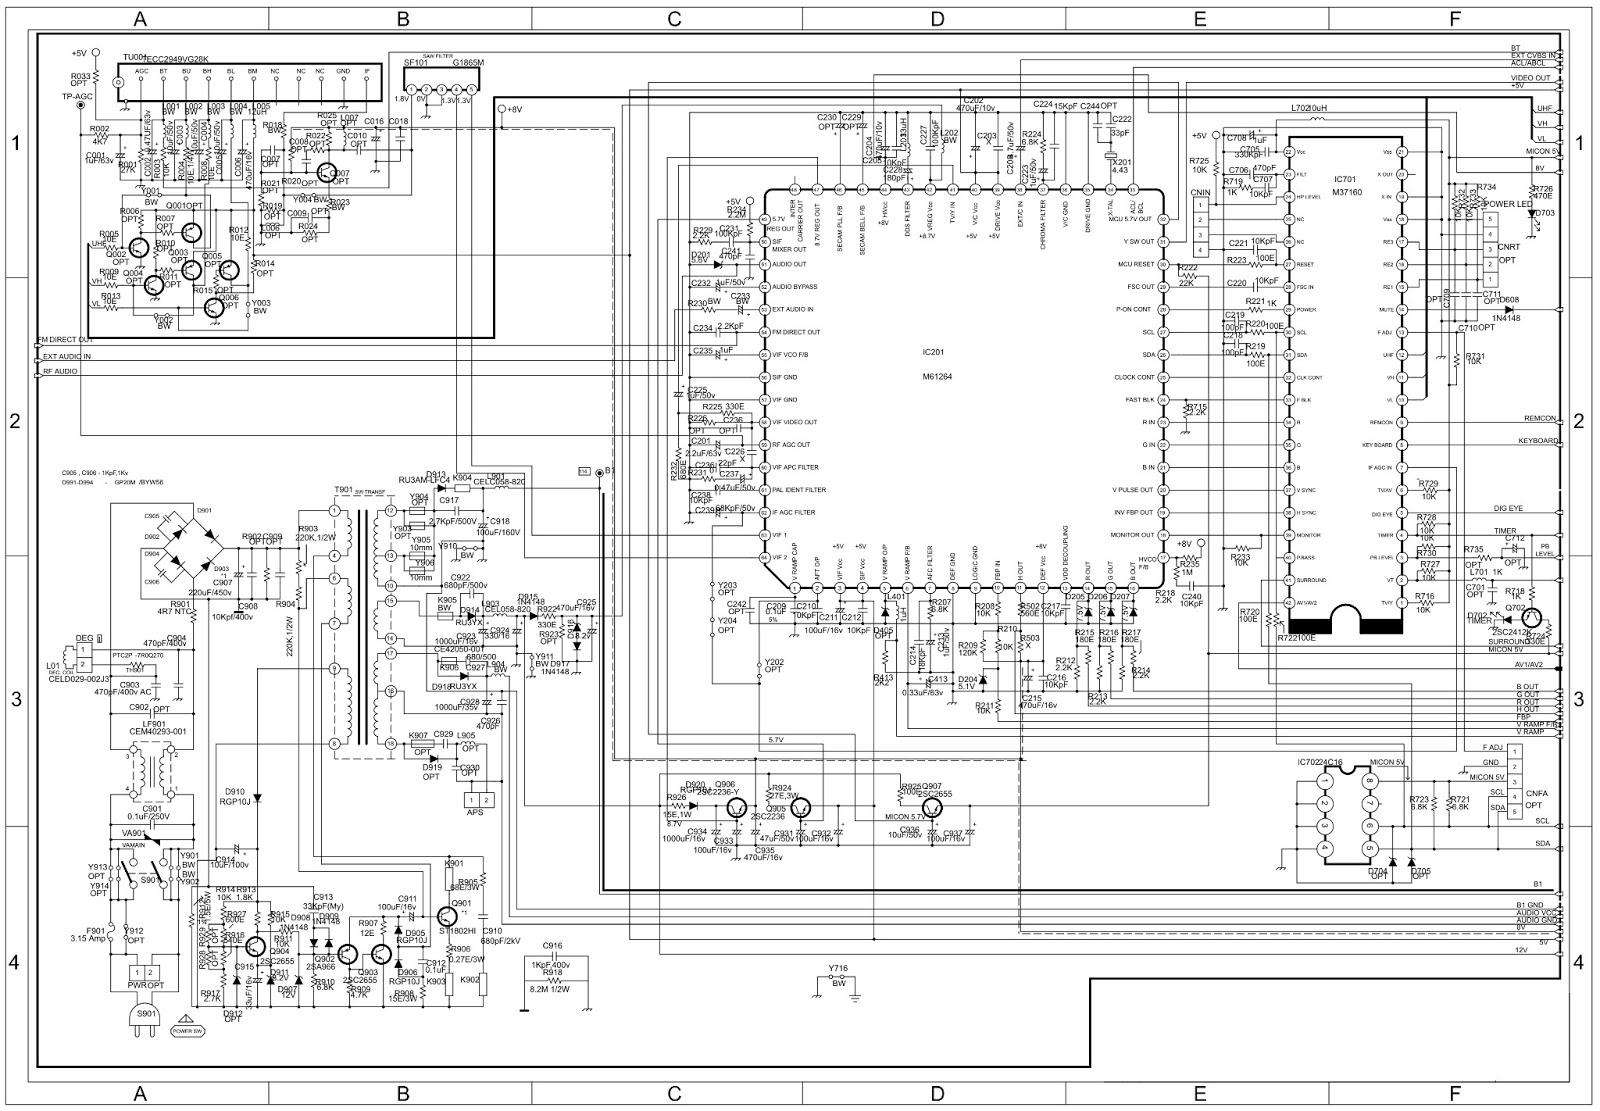 Lcd Circuit Diagram Pdf Trusted Wiring 19 Inch Monitor Power Supply Schematic Onida Igo Delite 21 U20ac U201c 14 Used Ics M37160 Rh Thecircuitdiagrams Blogspot